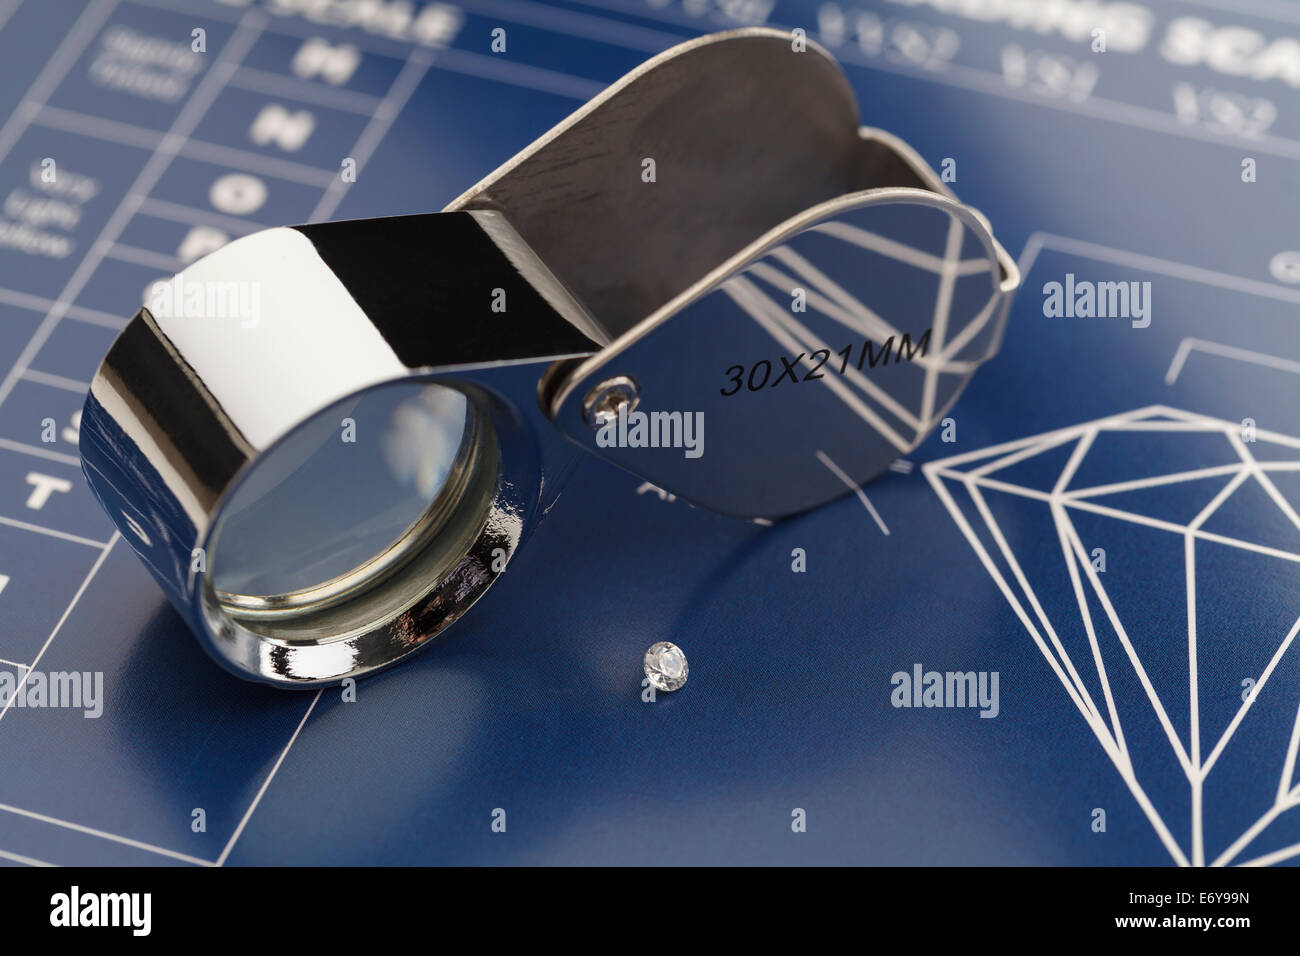 Blue Diamond Grading Chart with Diamonds and Loupe. - Stock Image